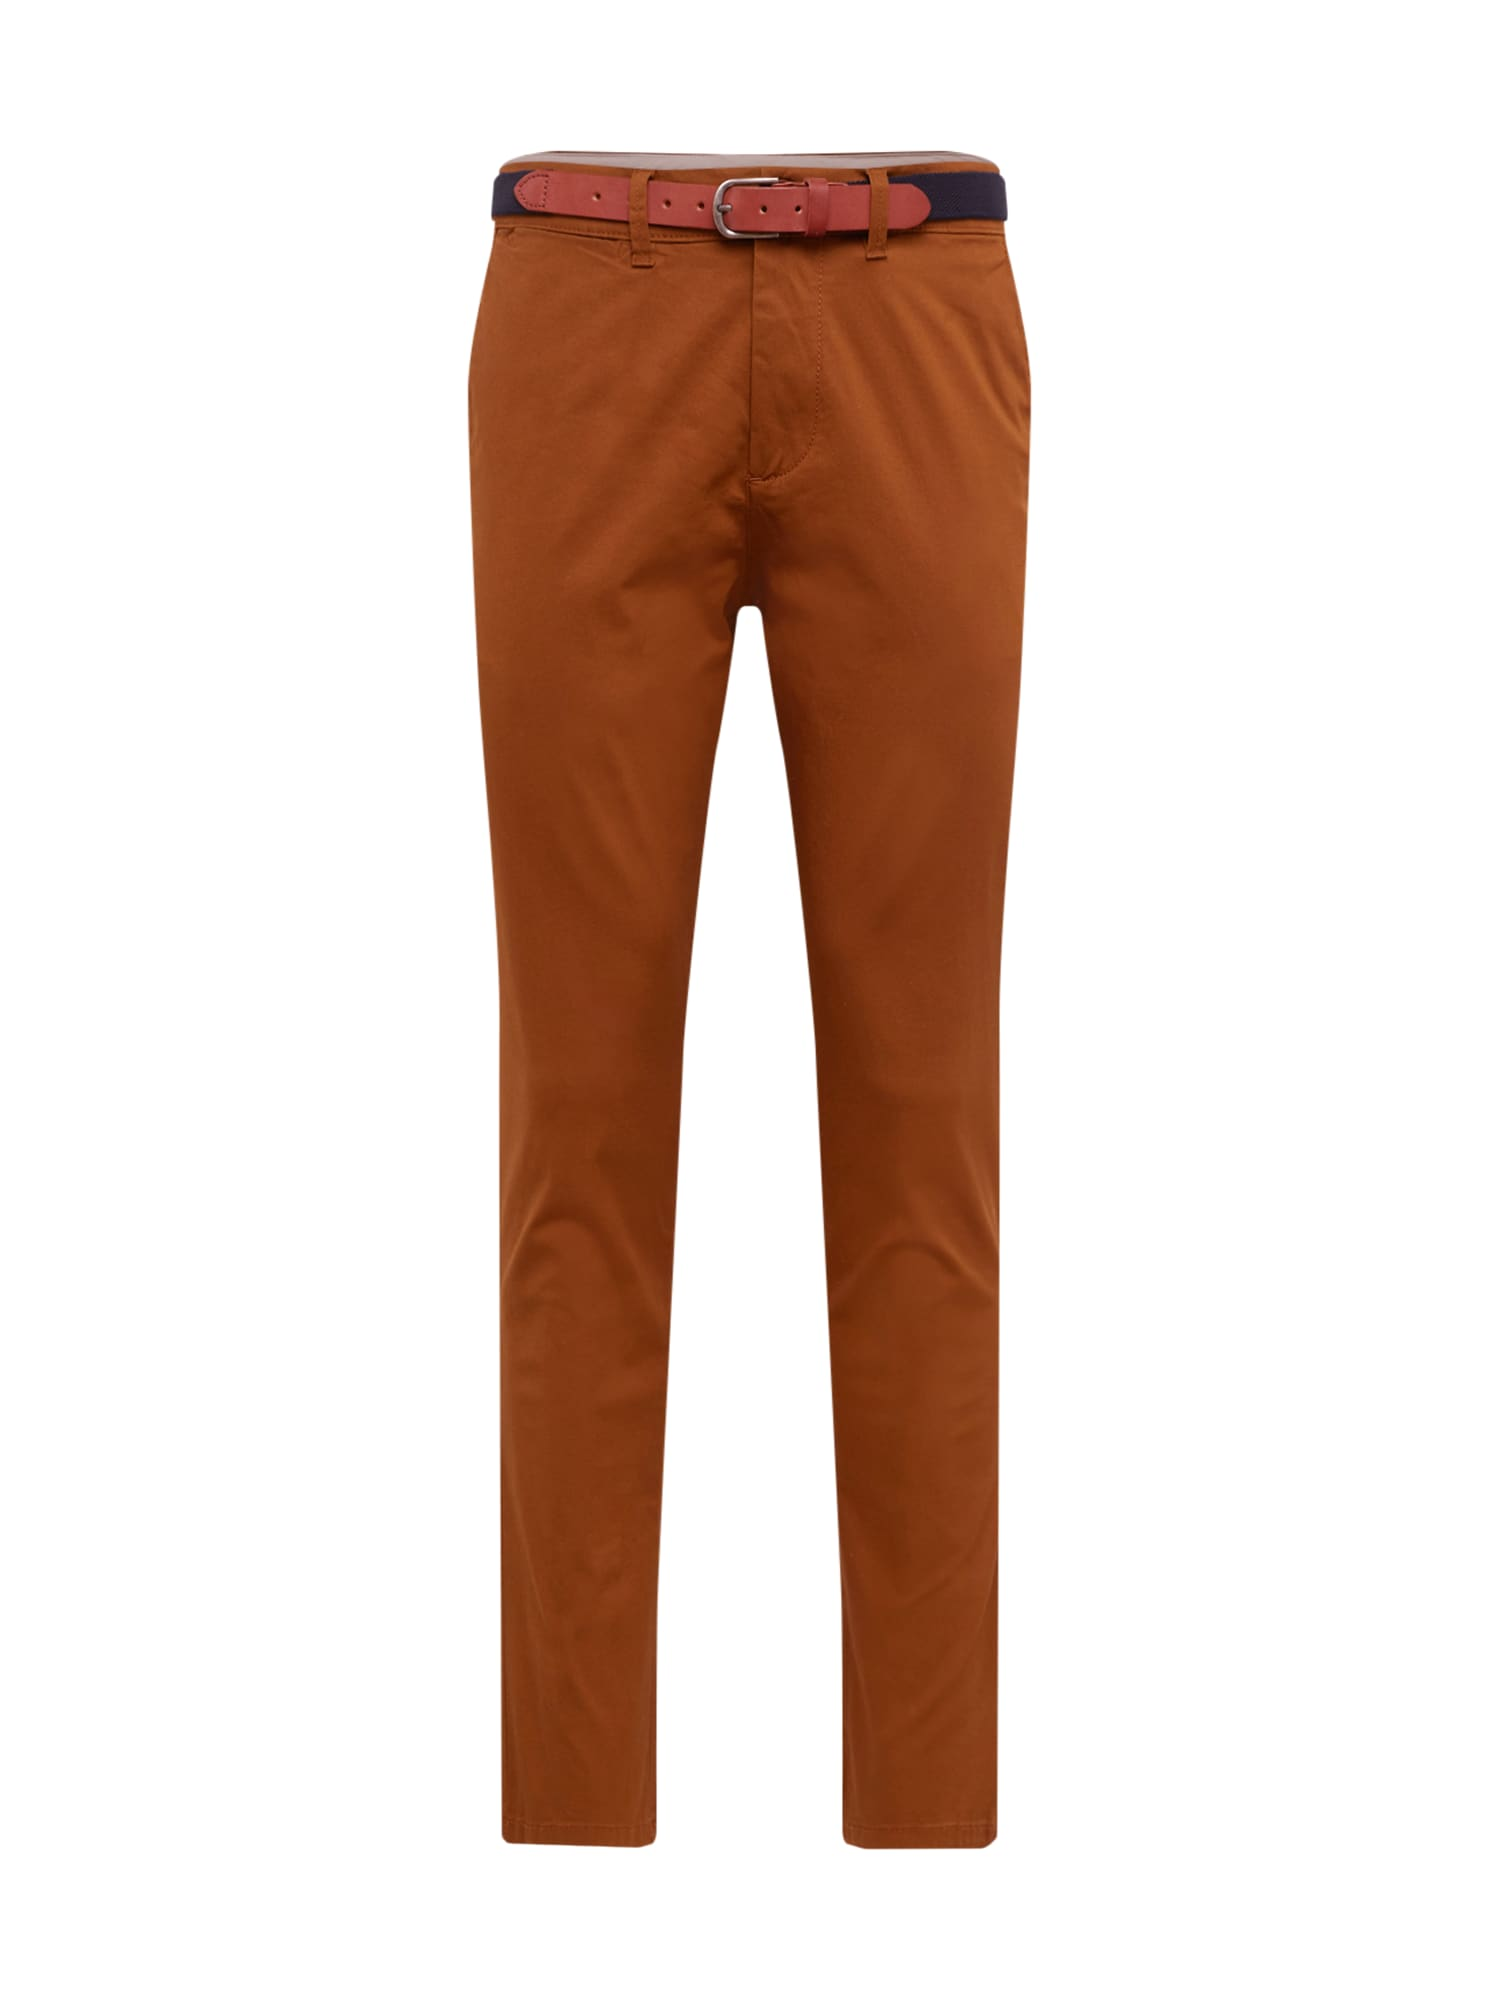 SELECTED HOMME Chino nohavice 'YARD PANTS'  hnedé